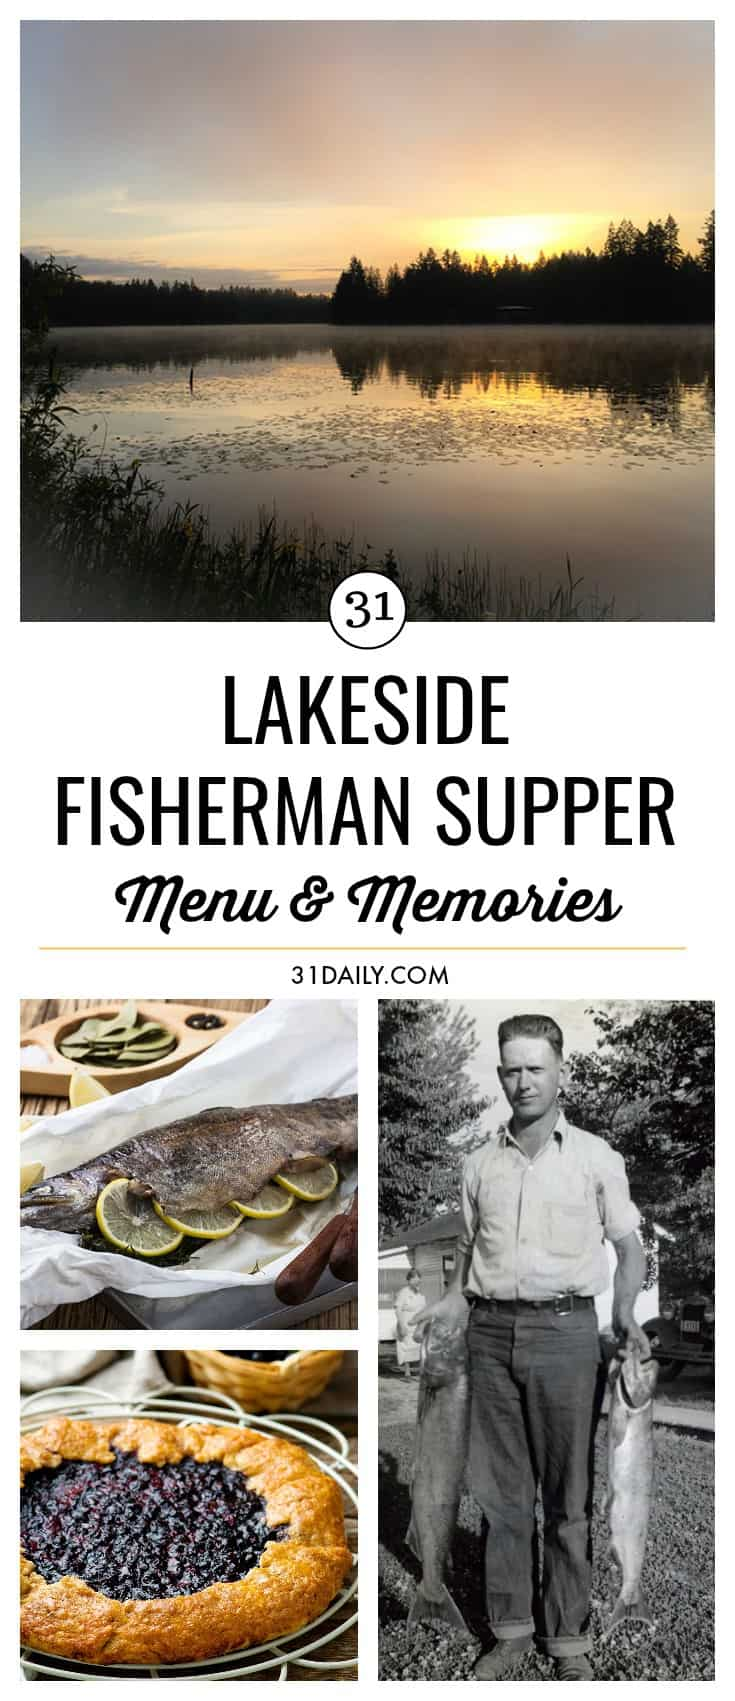 Father's Day Menu -- A Lakeside Fisherman Supper -- outdoorsy foods with flavorful herbs, seasonal produce with a little classic comfort food. 31Daily.com